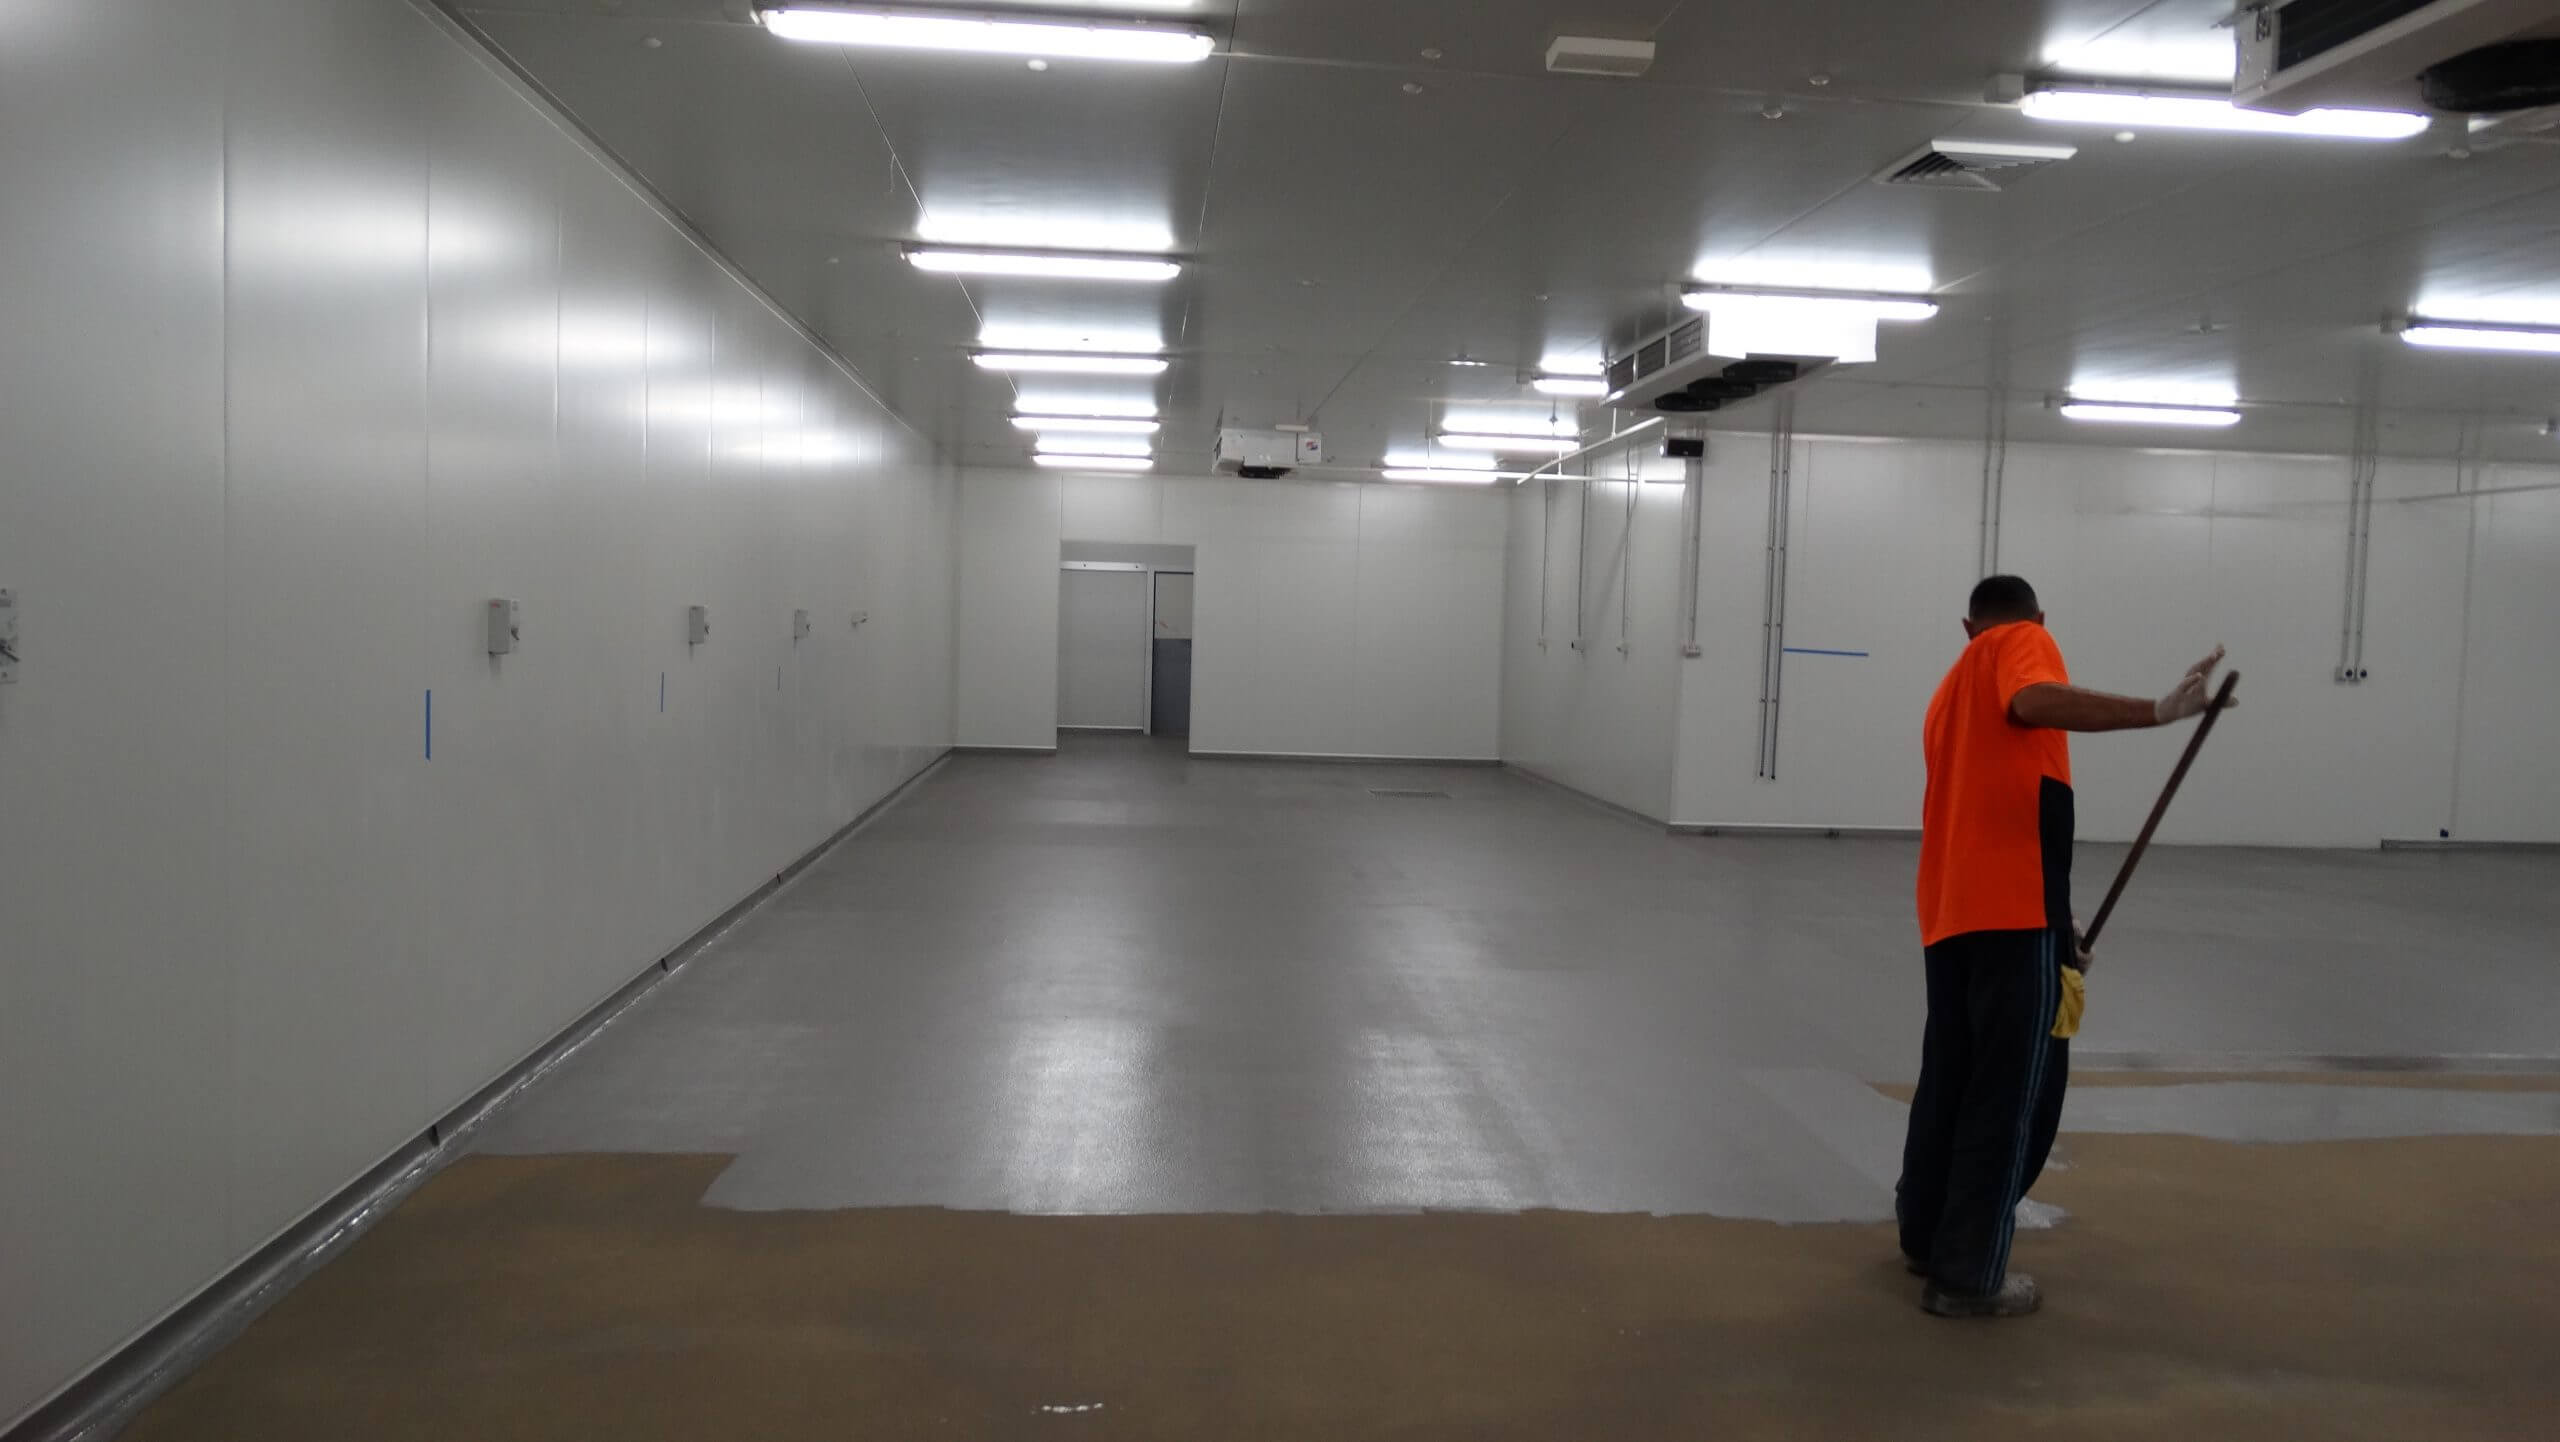 Apllying Flooring Solution - Epoxy Flooring - Remedial Building Services